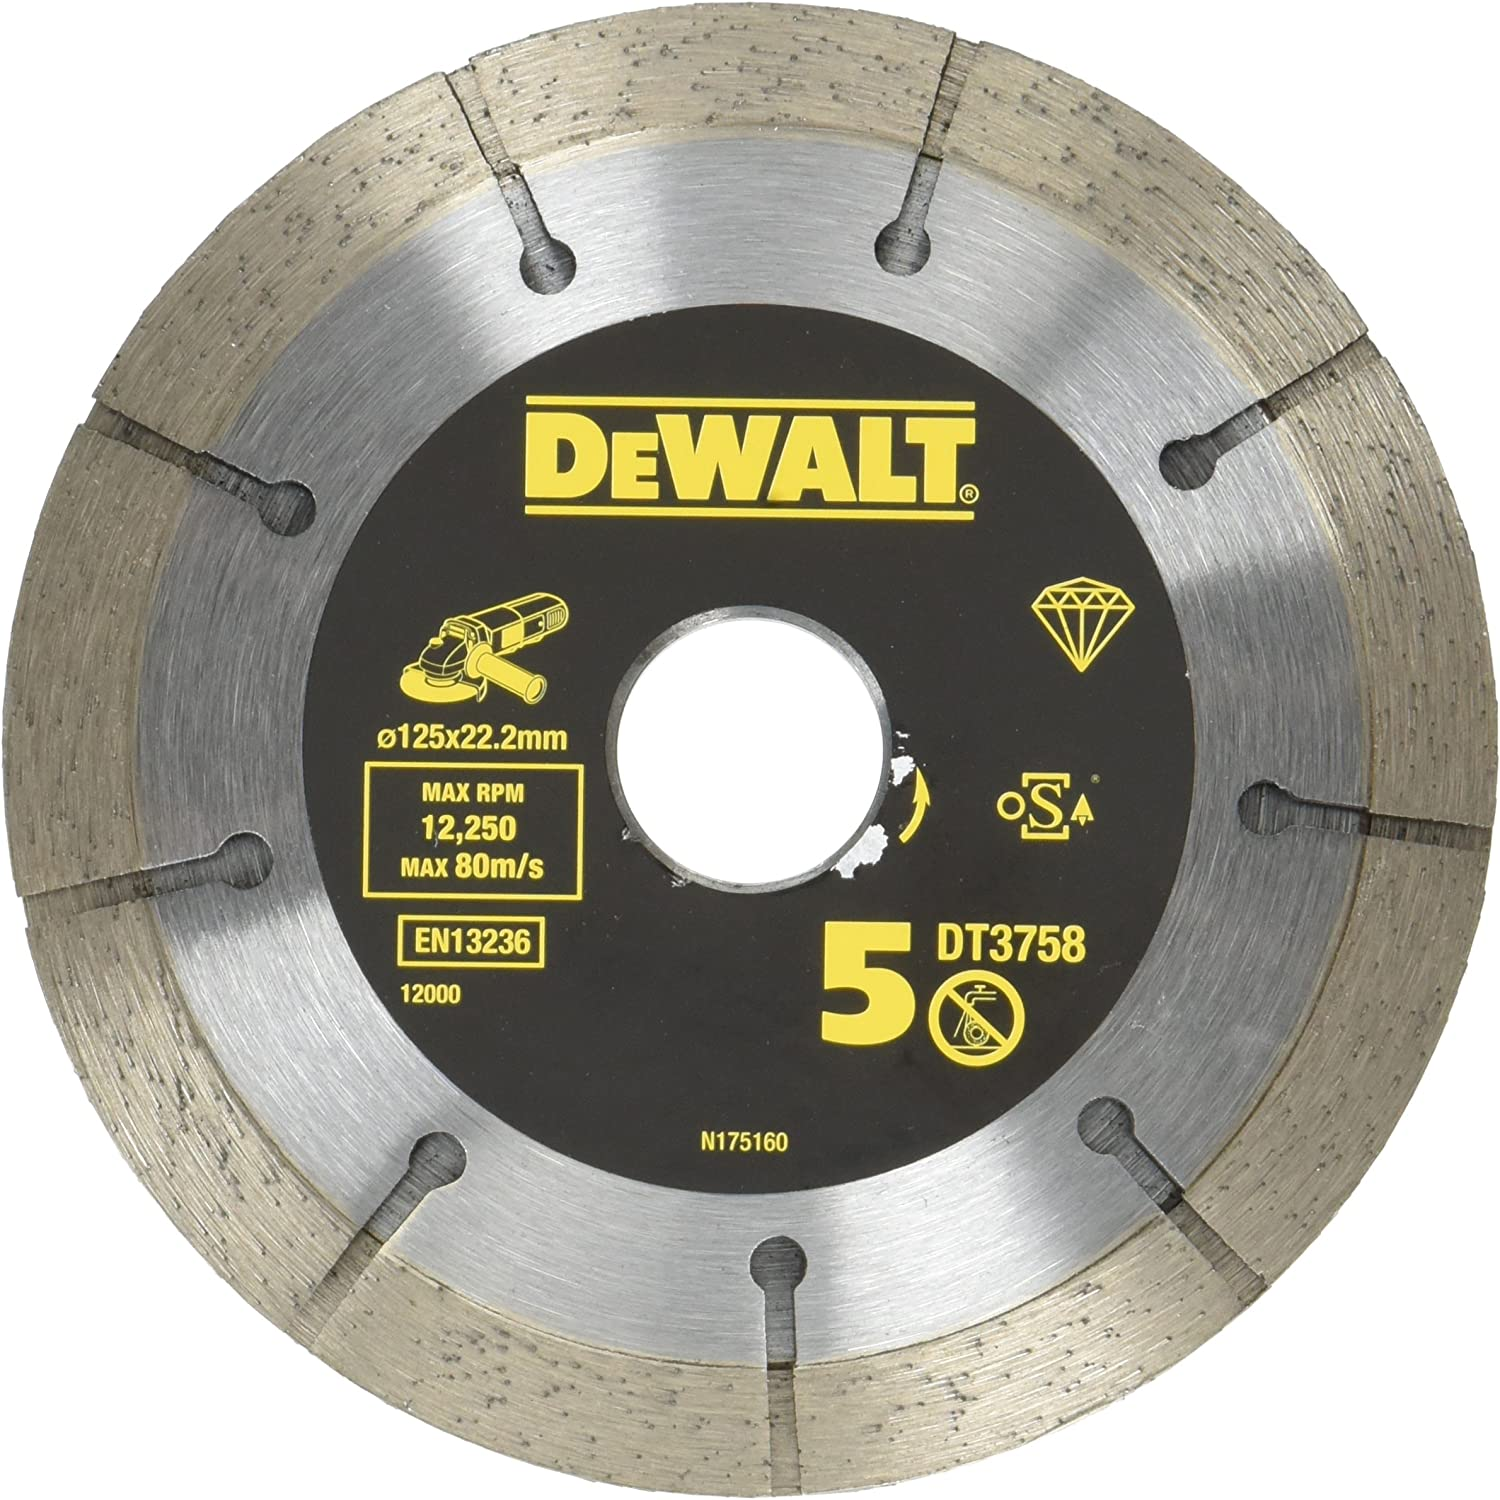 125mm//5//6.0mm Width TROJAN Platinum Professional Contractor Mortar Raking Diamond Blade//Diamond Disc